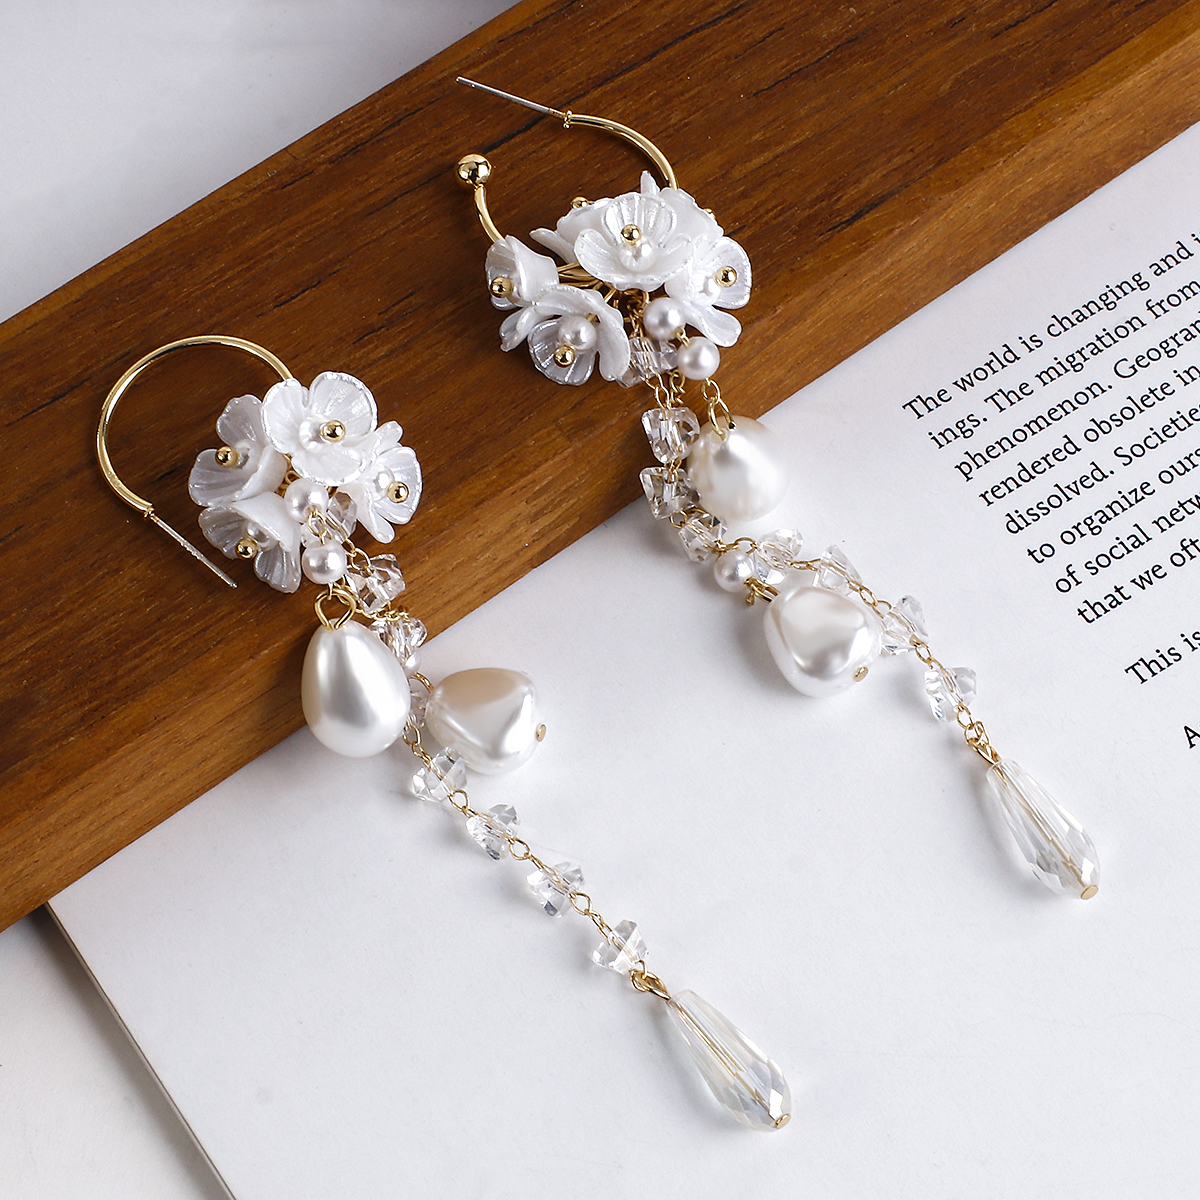 Lifefontier Fashion Long Tassel Simulated Pearl Drop Earrings Big Crystal Bead Resin Flower Petal Earrings for Women Wedding